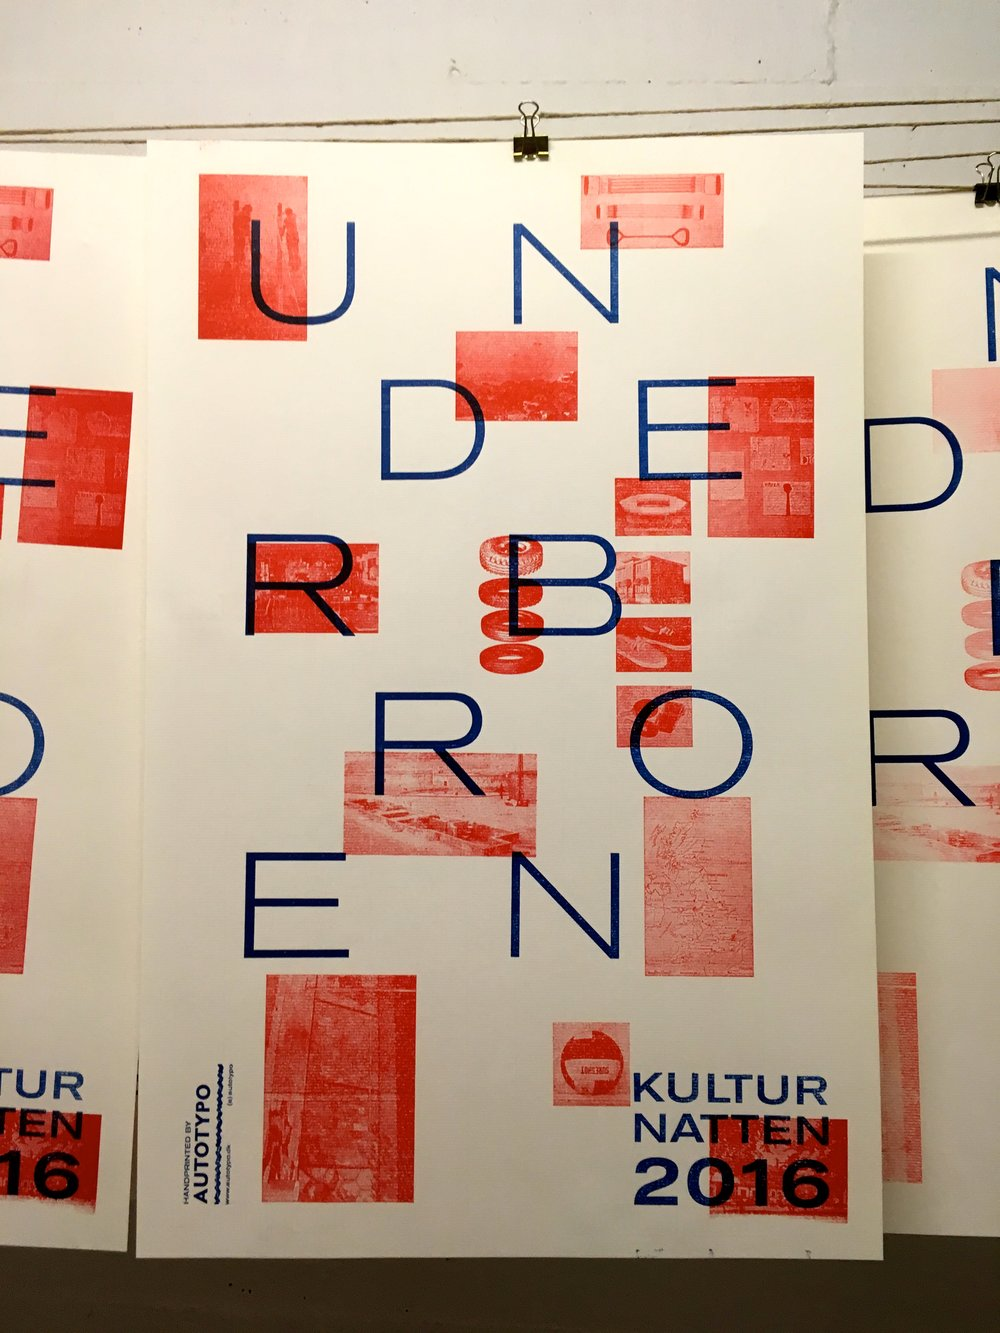 AutoTypo   Letterpress poster (limited edition)  Designed and made by Kaspar Sivertsen